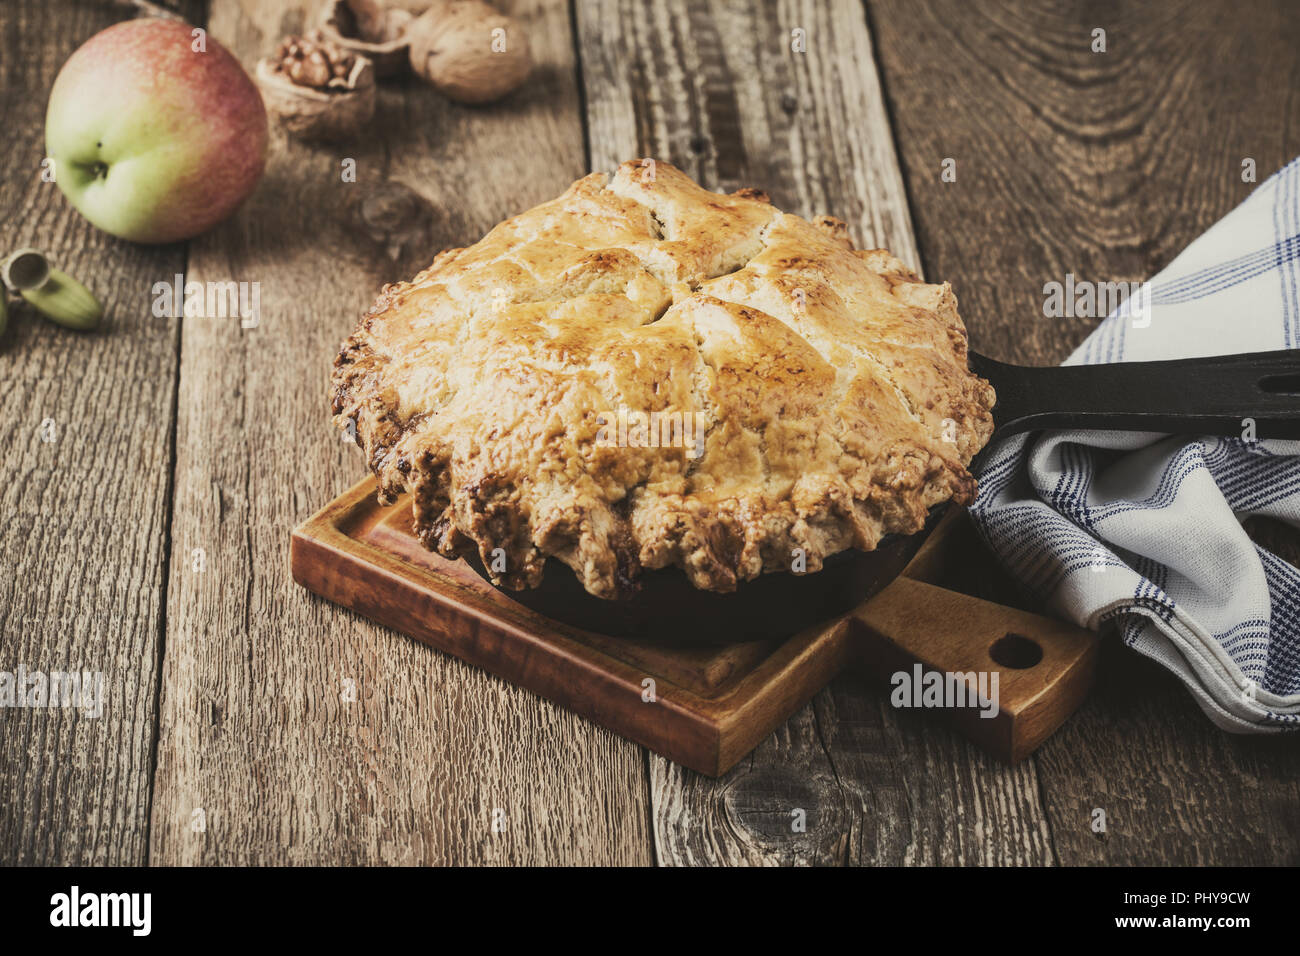 Apple pie in cast iron skillet on rustic wooden table, traditional autumn cozy dessert - Stock Image